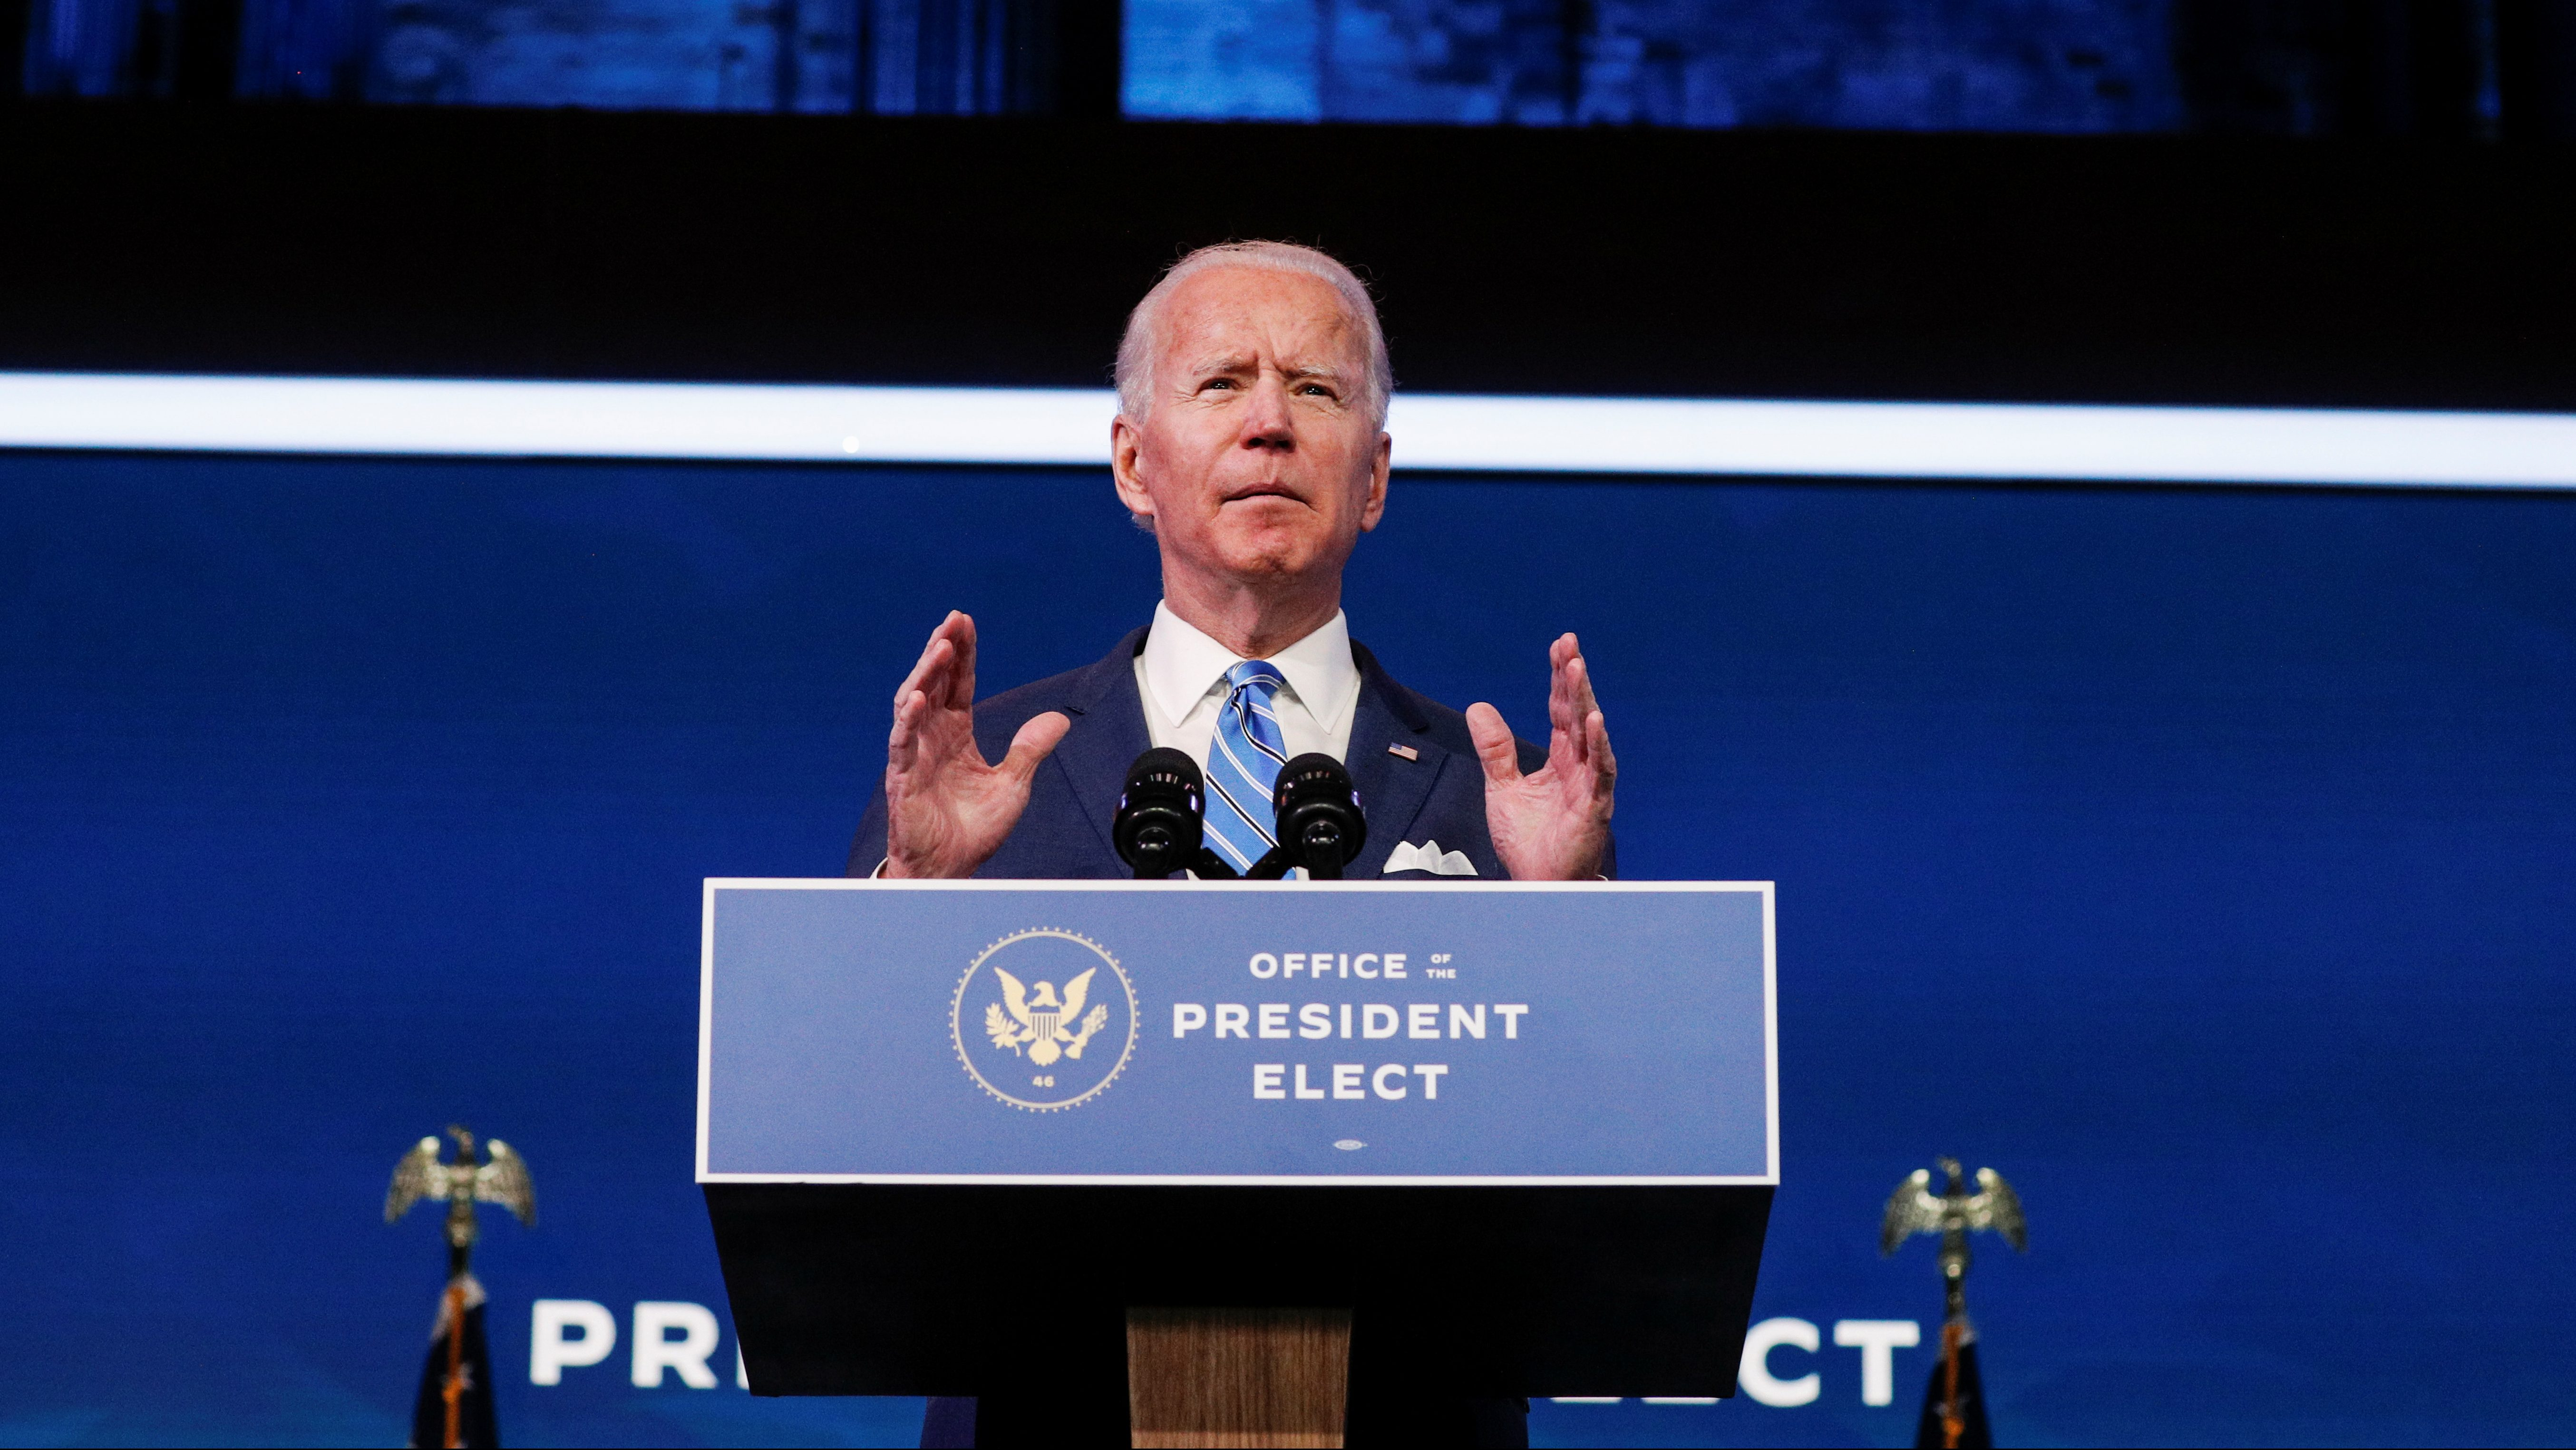 US president-elect Joe Biden delivers remarks during a televised speech on the current economic and health crises at The Queen Theatre in Wilmington, Delaware, U.S., January 14, 2021.